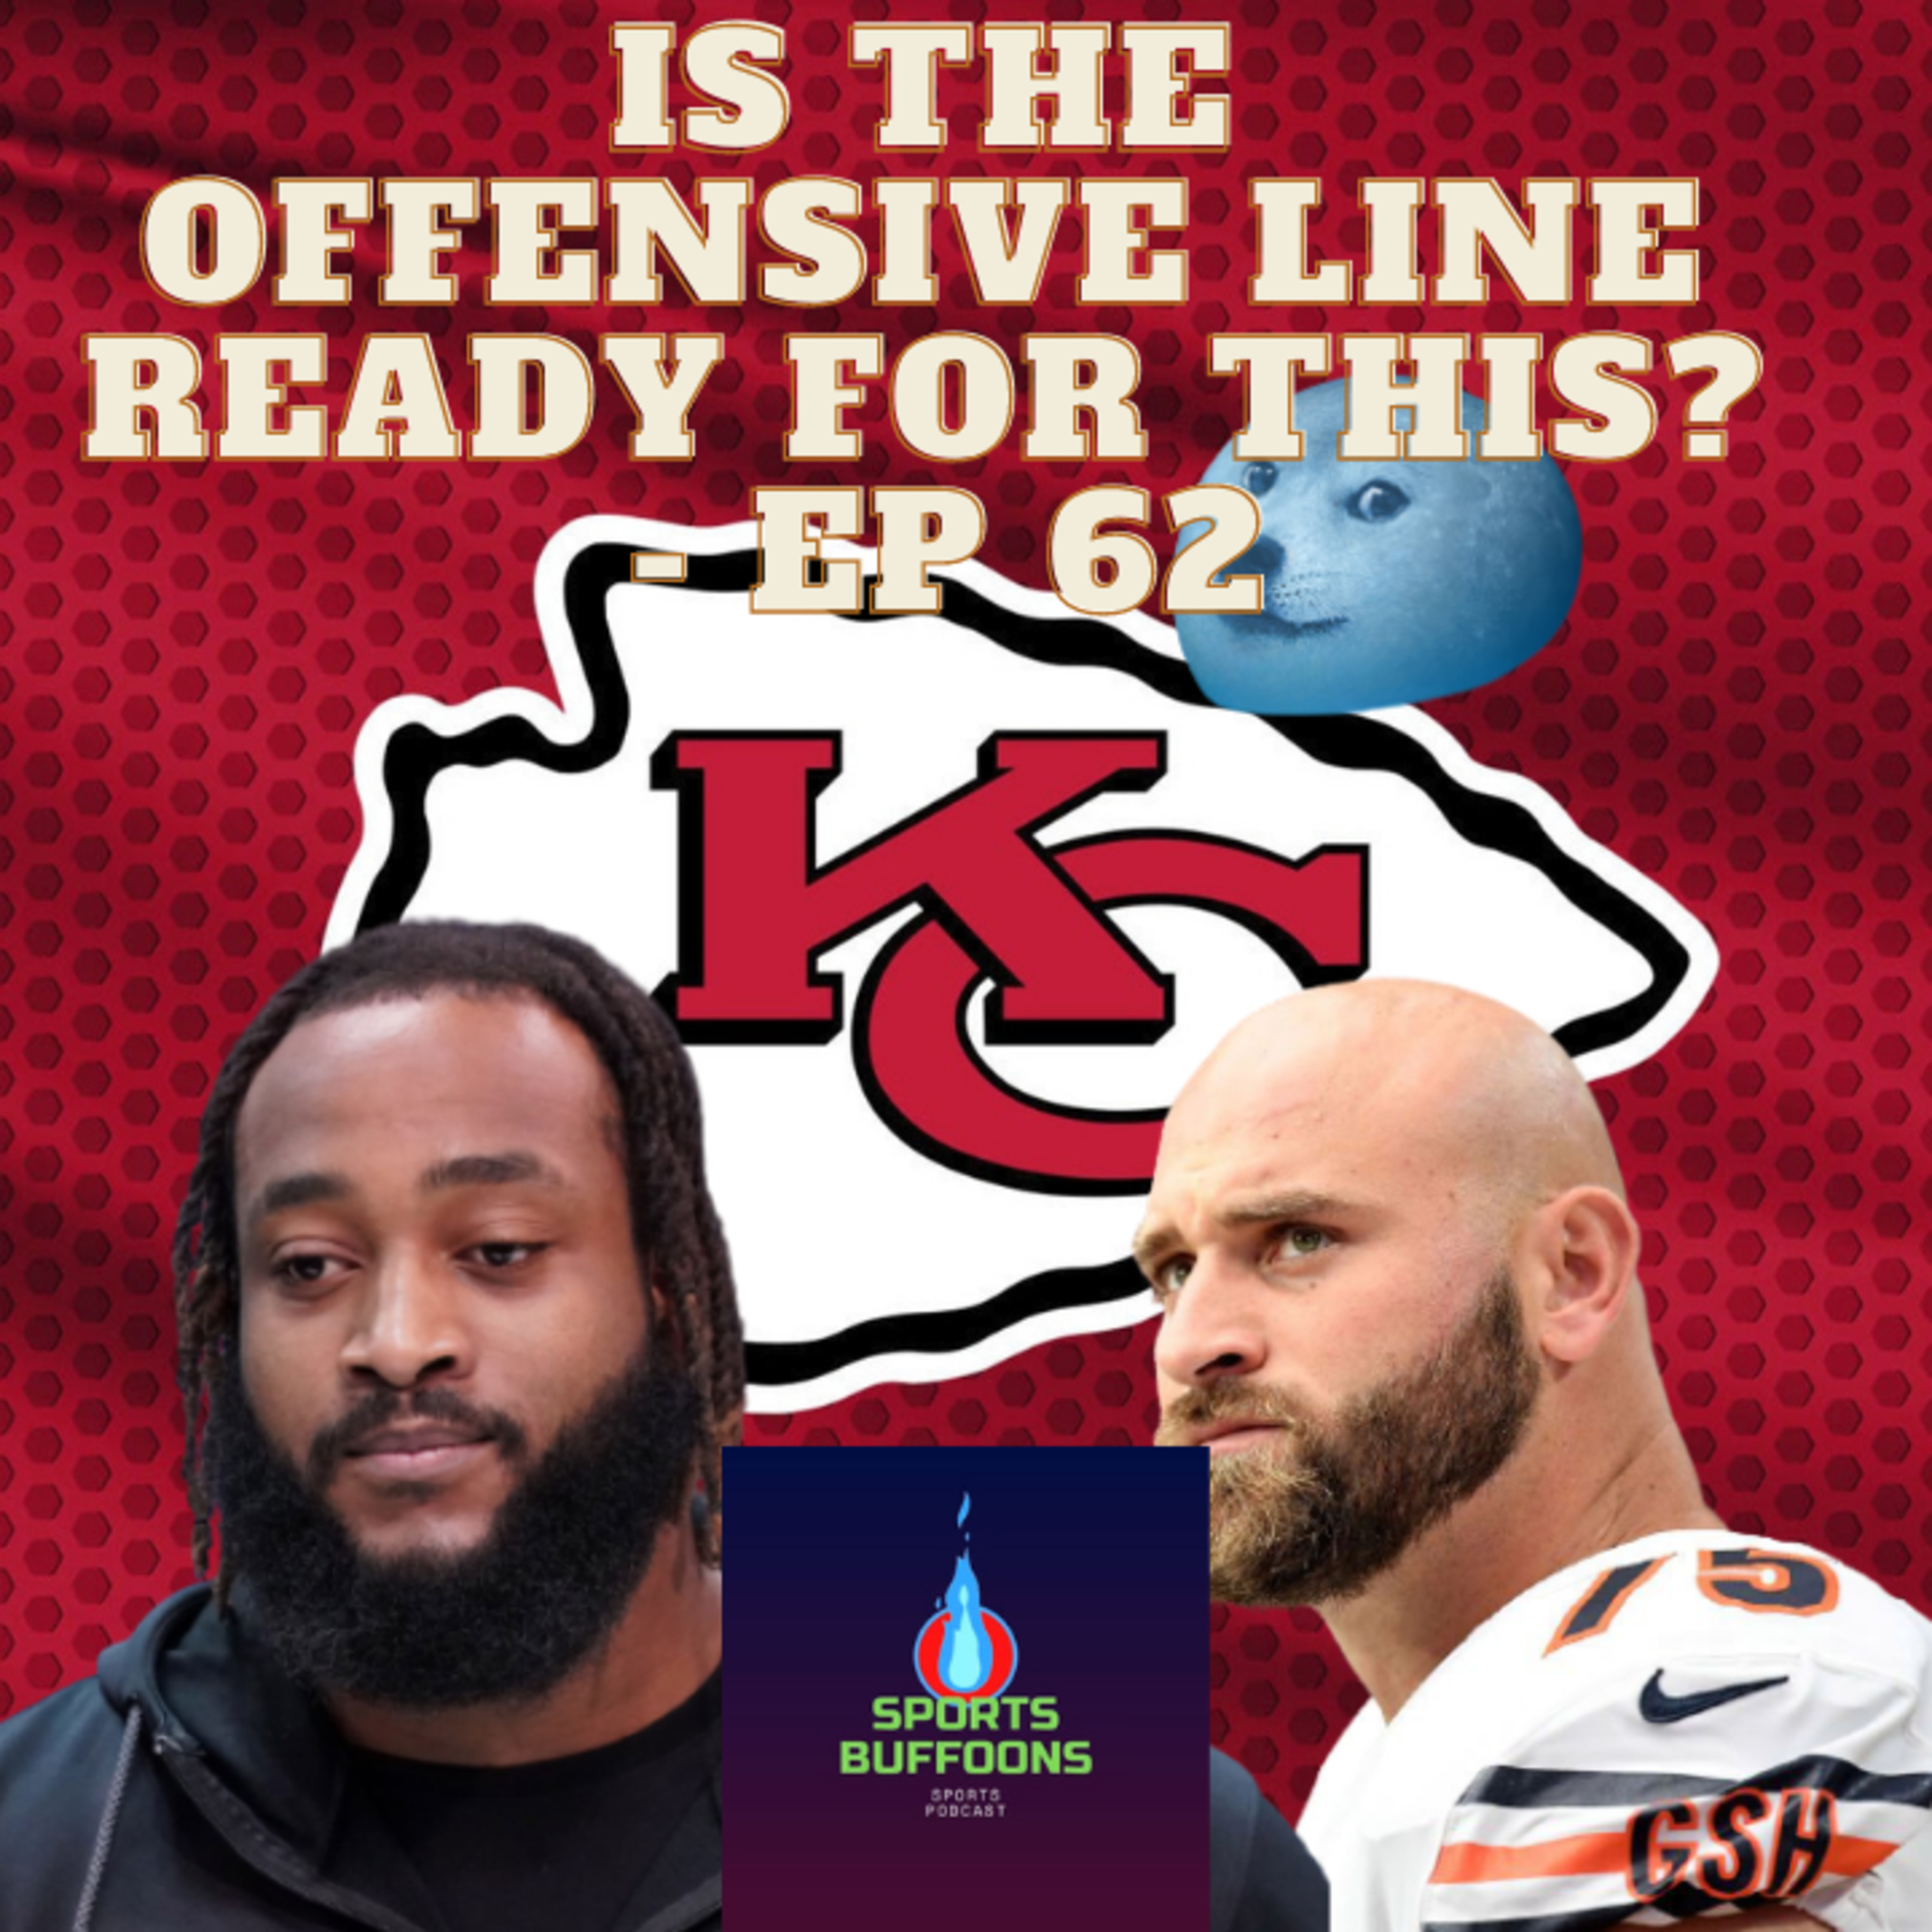 Kansas City Chiefs Mini Camp Update: Is the Offensive Line ready for this? - EP 62